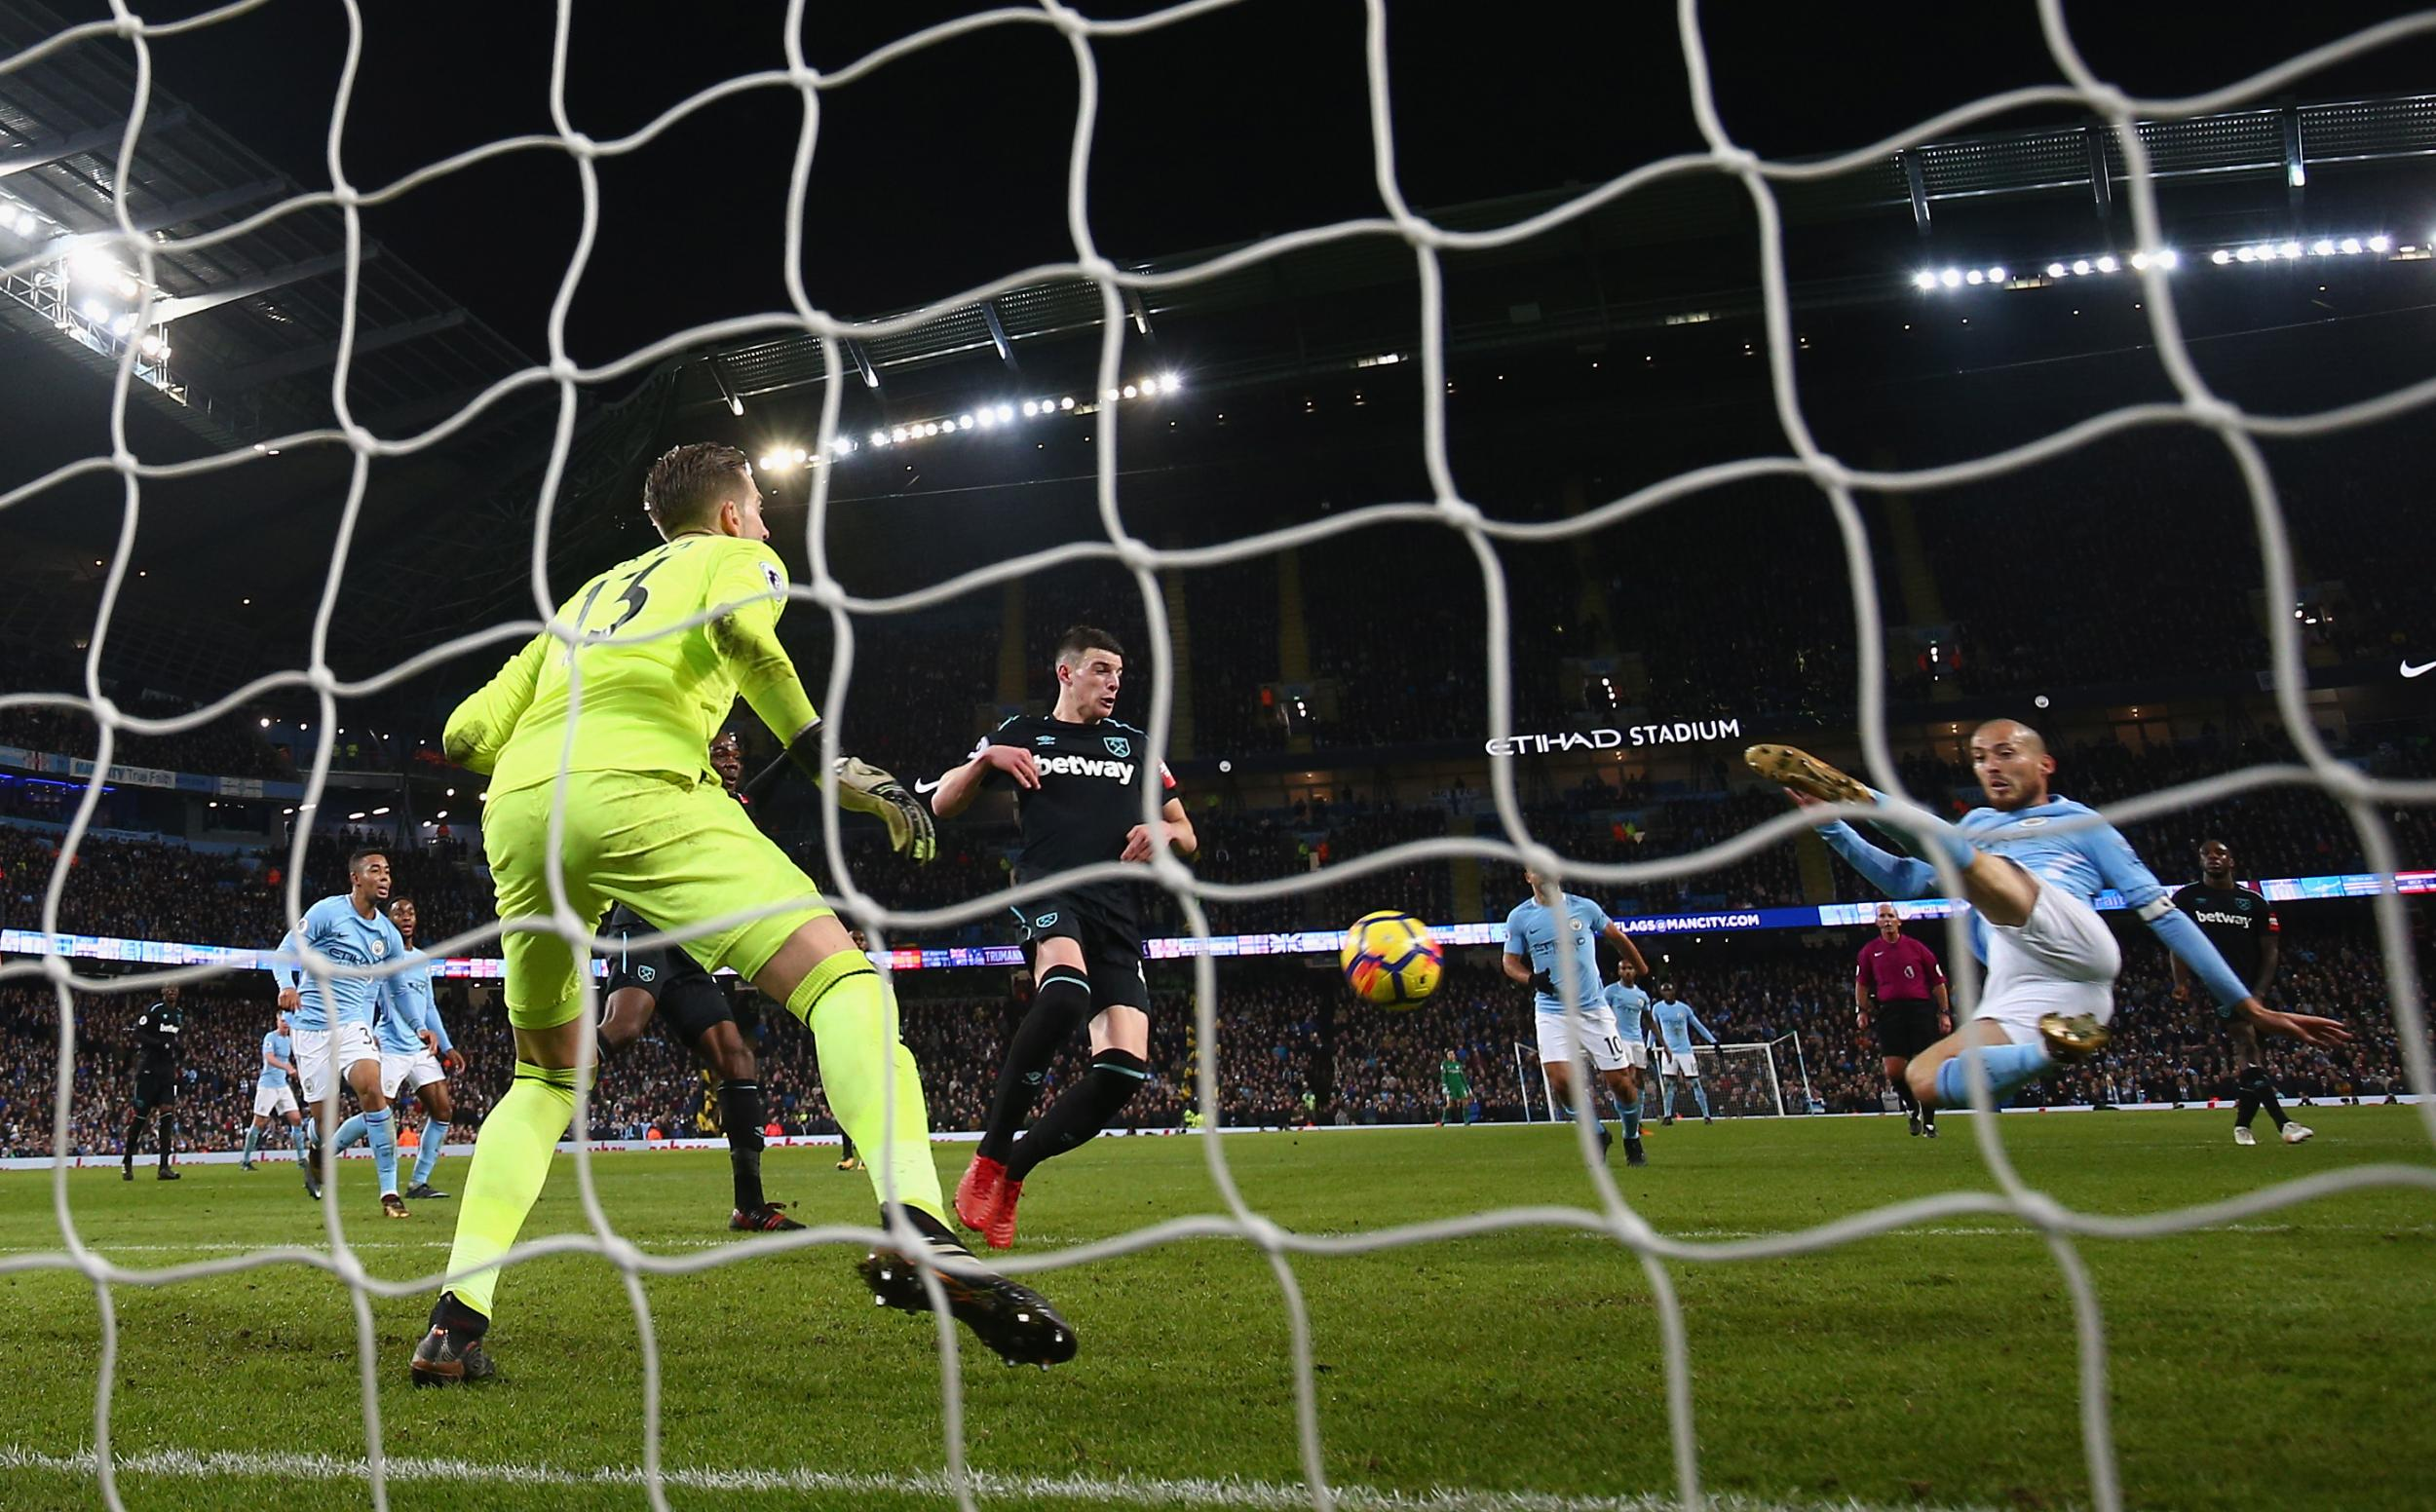 The inside story of Manchester City's title win, why it wasn